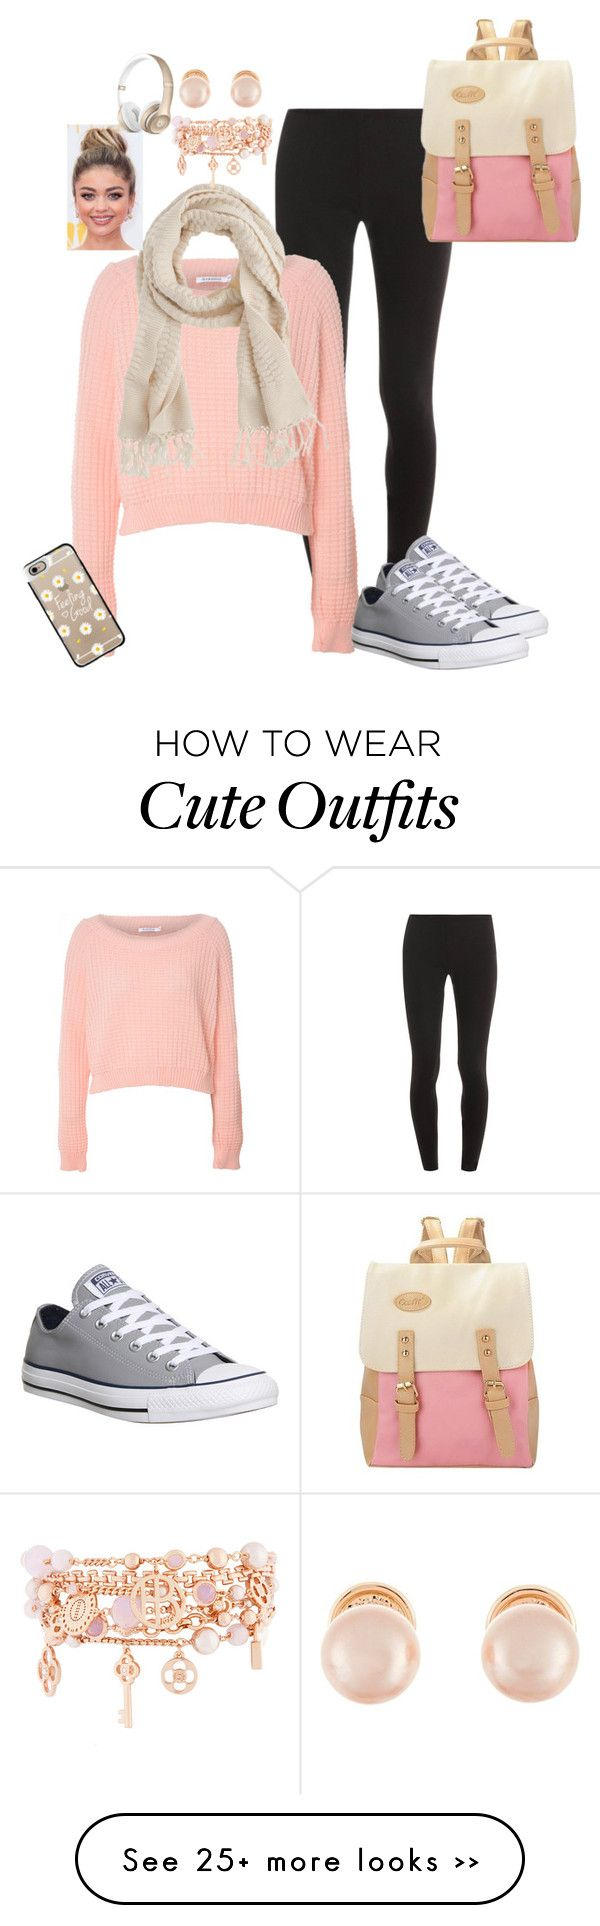 """""""Fall Outfit"""" by savyone2000 on Polyvore featuring Splendid, Glamorous, Converse, J.Crew, Kenneth Jay Lane, Casetify and Henri Bendel"""